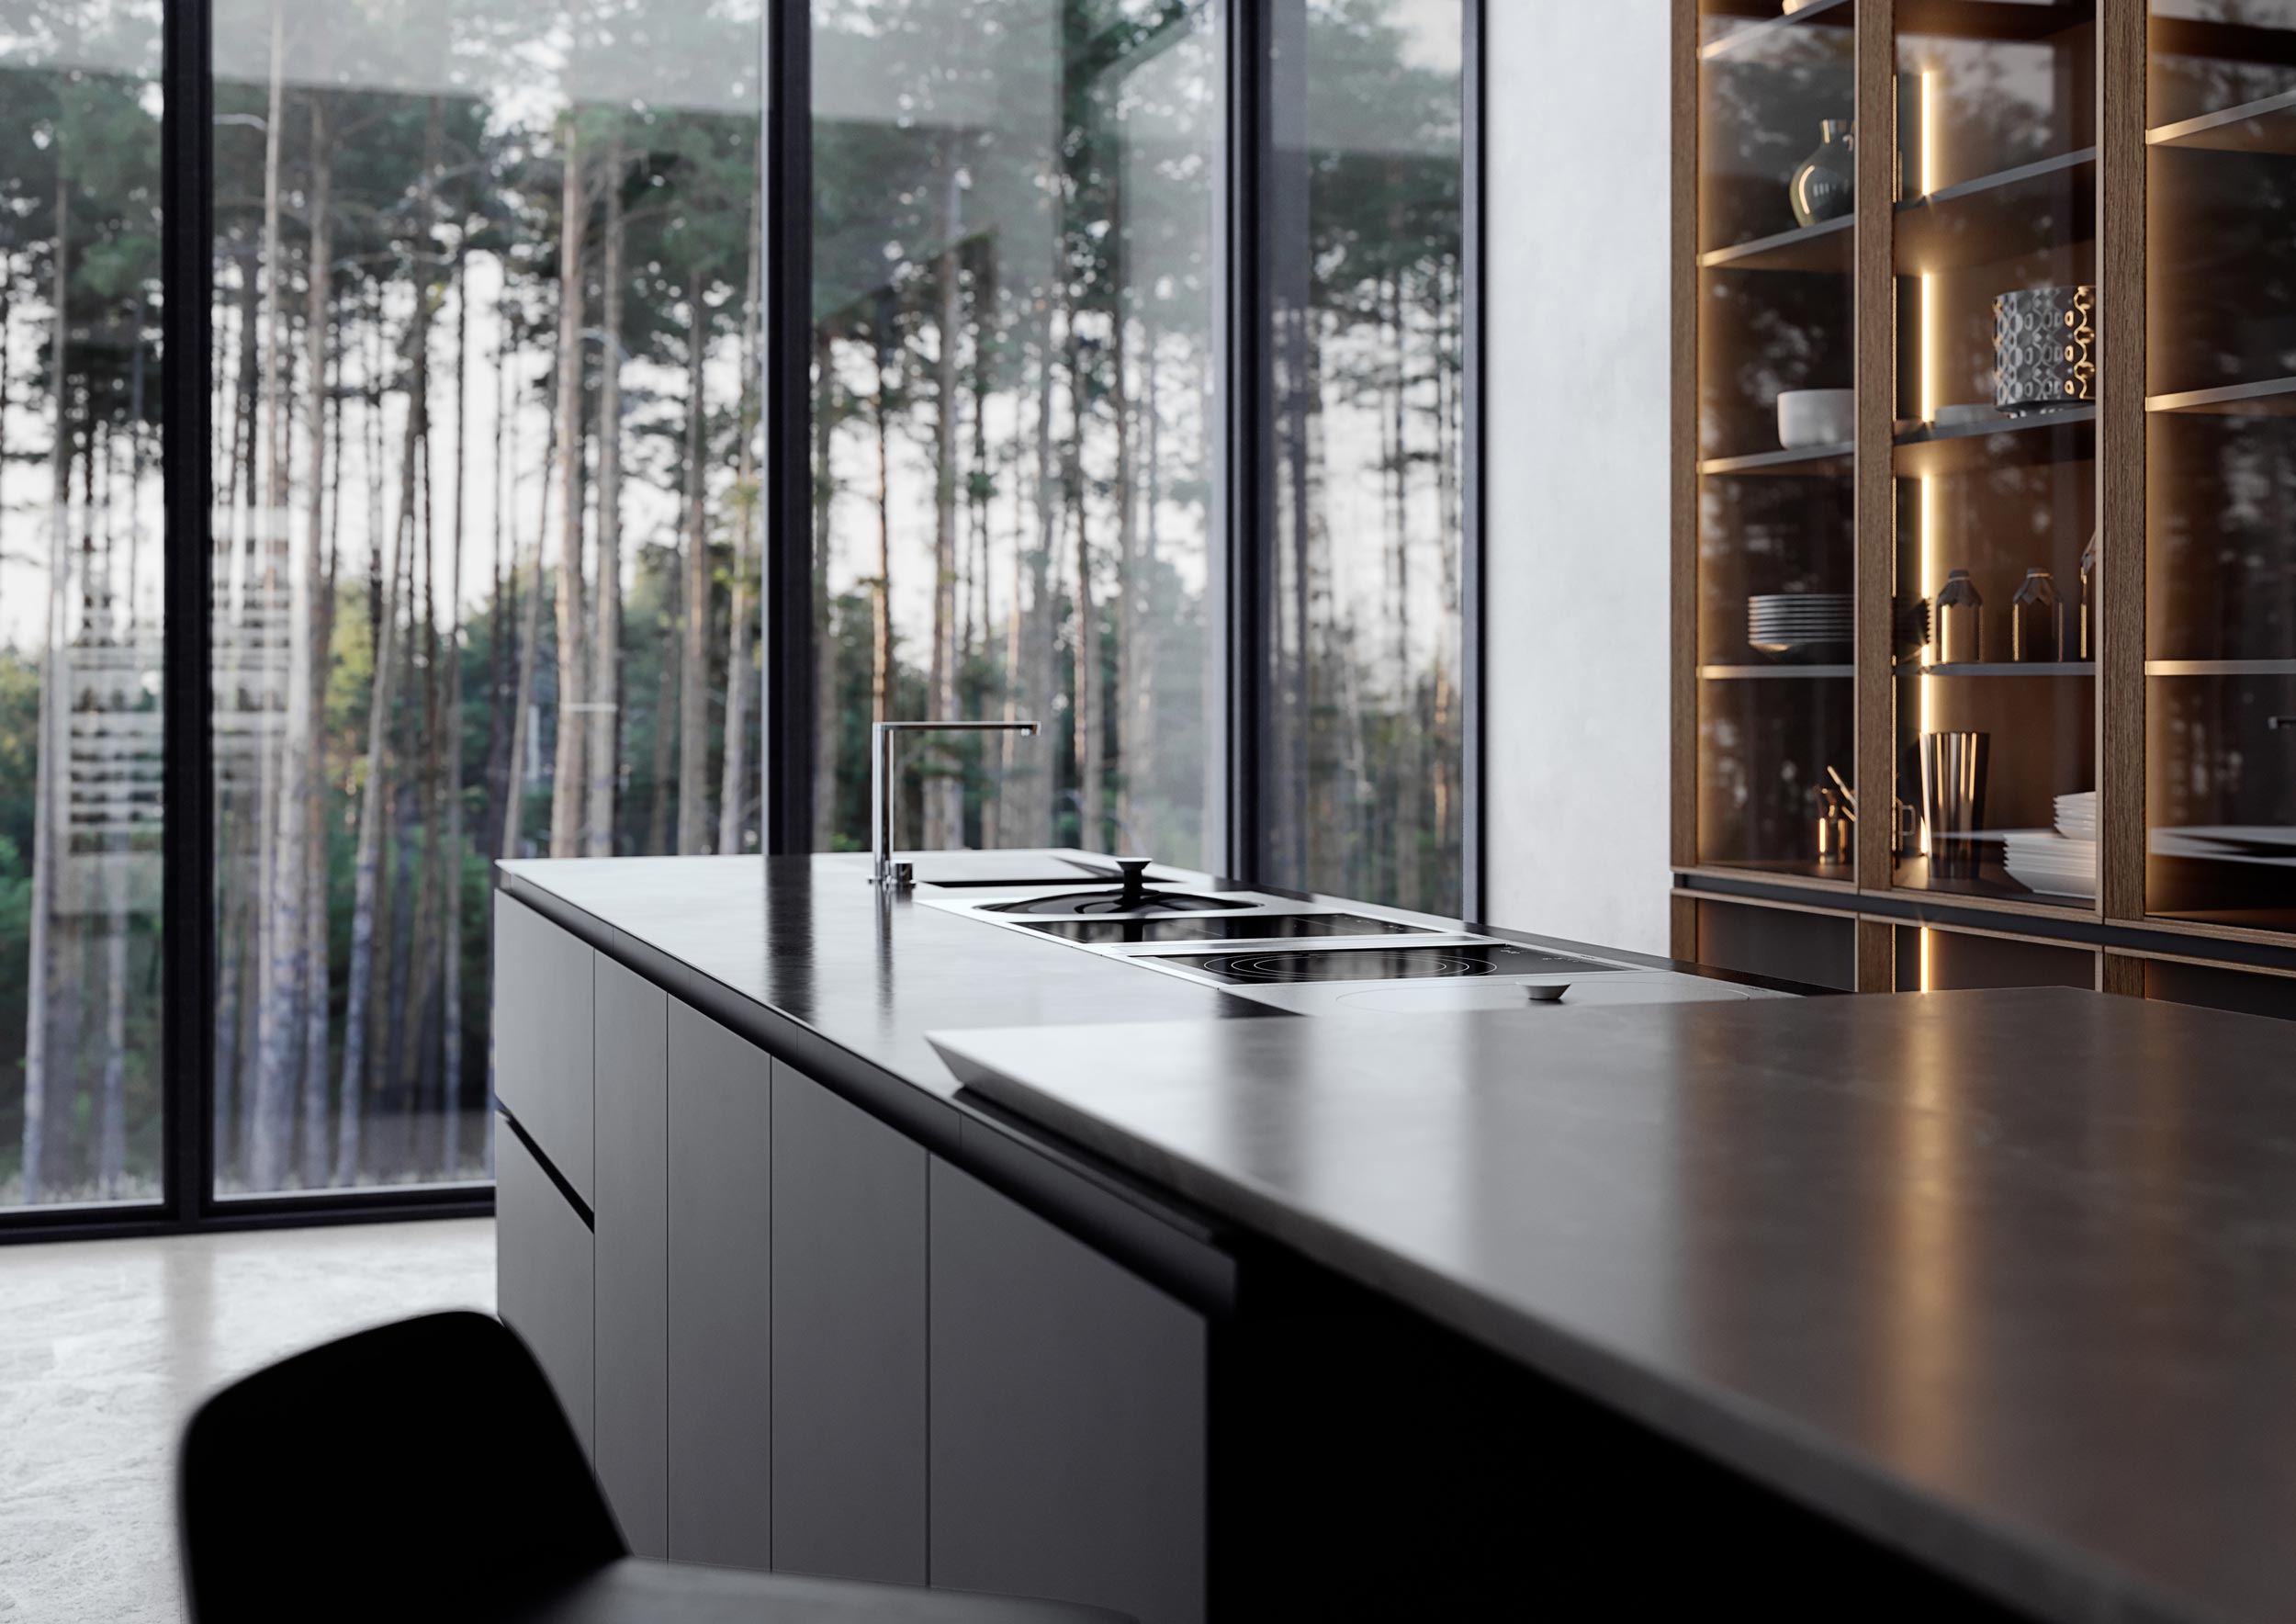 Full CG - Home Appliances - Showroom Forrest - Hobs